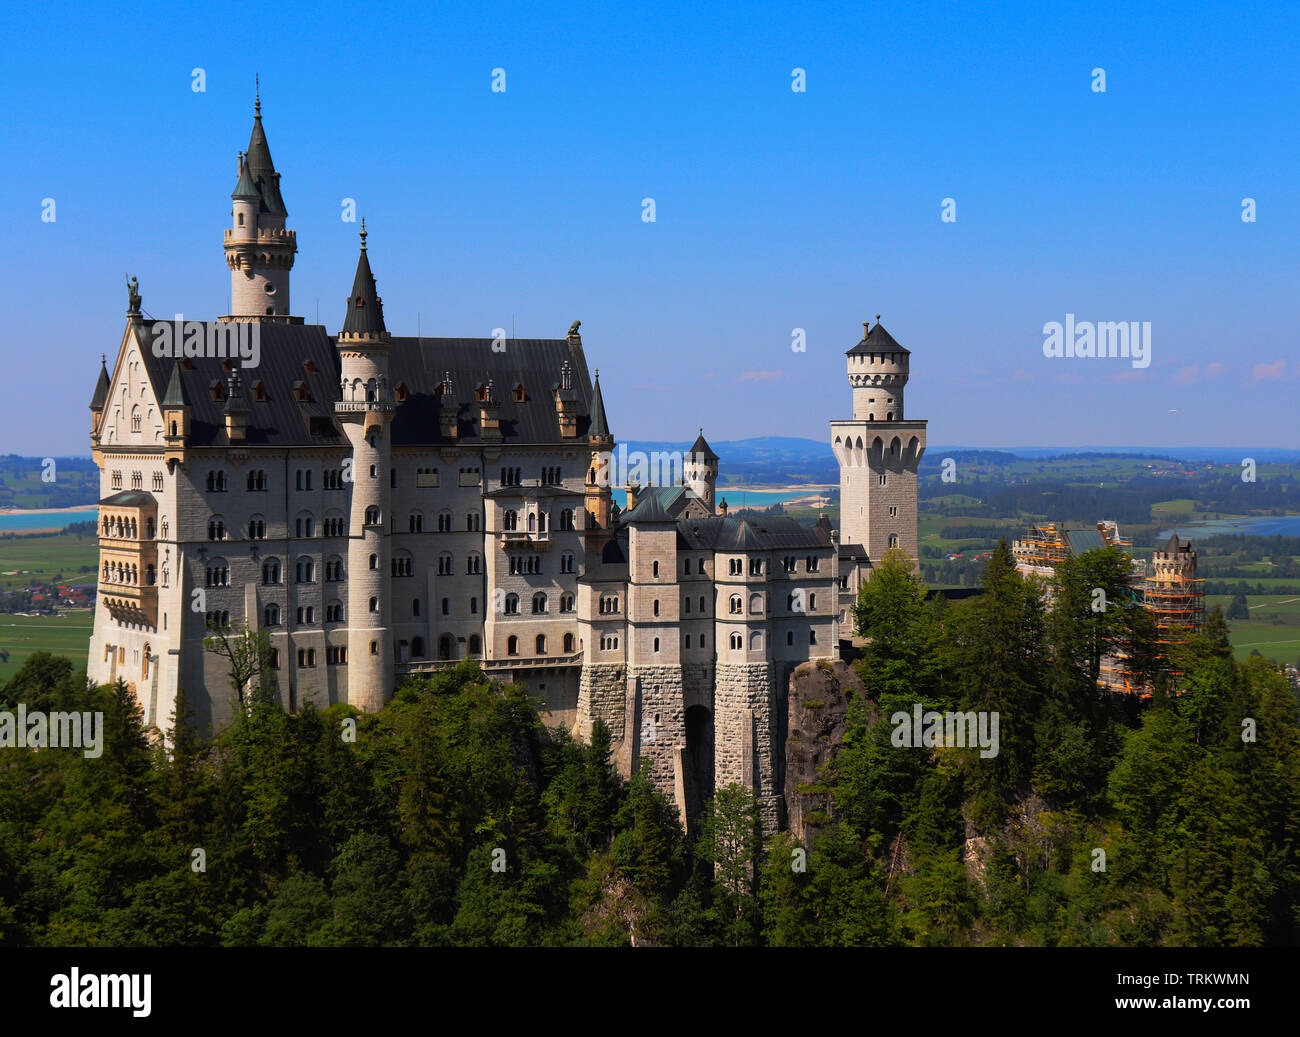 A view of the Neuschwanstein Castle in Germany. Neuschwanstein Castle is a 19th-century Romanesque Revival palace near Fussen, commission - Stock Image